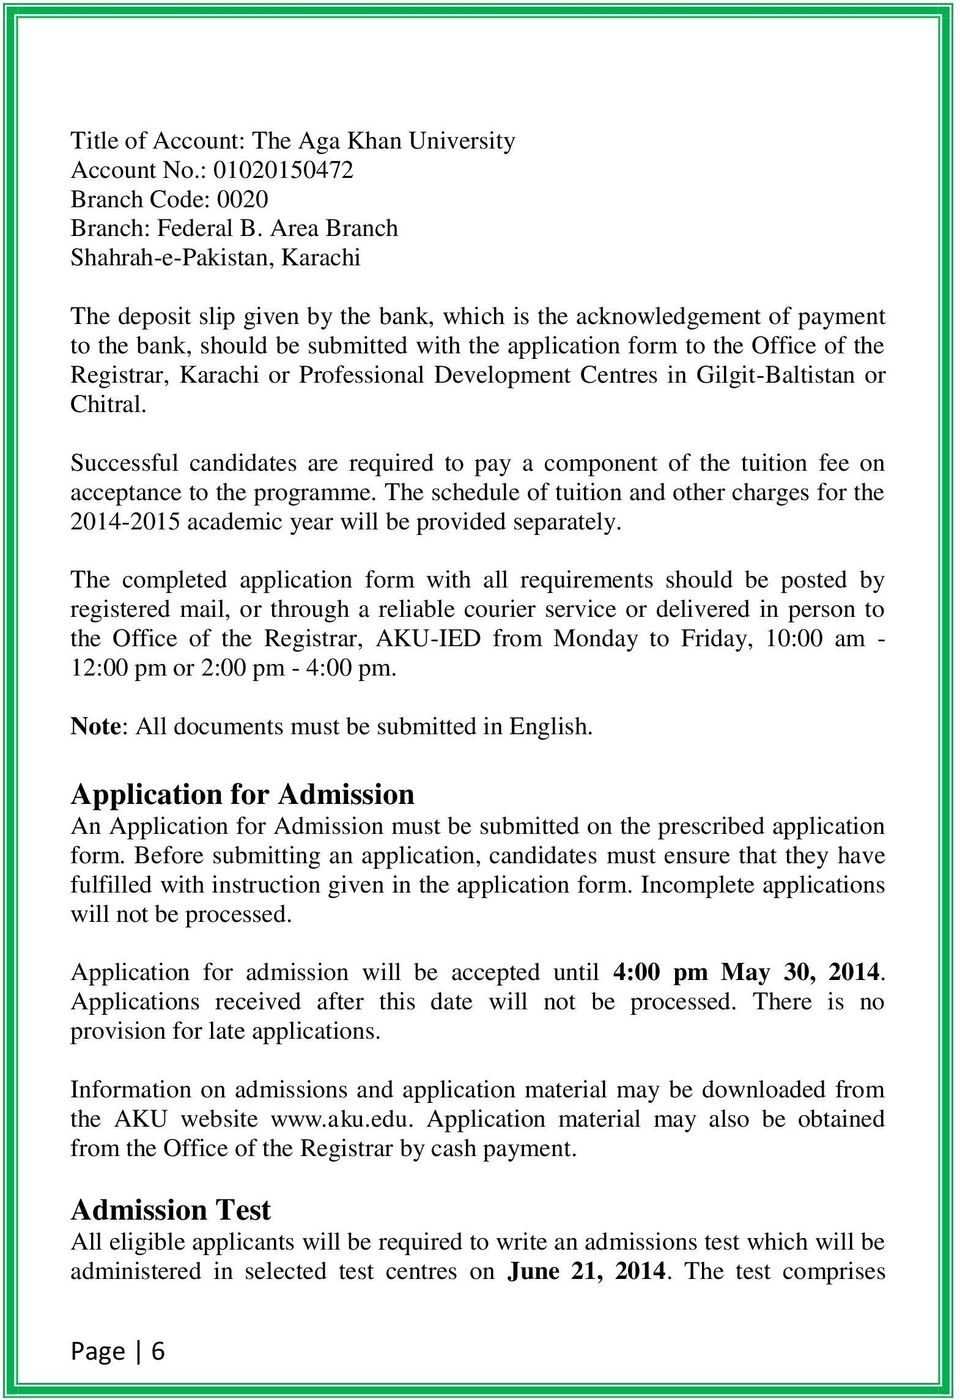 Registrar, Karachi or Professional Development Centres in Gilgit-Baltistan or Chitral. Successful candidates are required to pay a component of the tuition fee on acceptance to the programme.